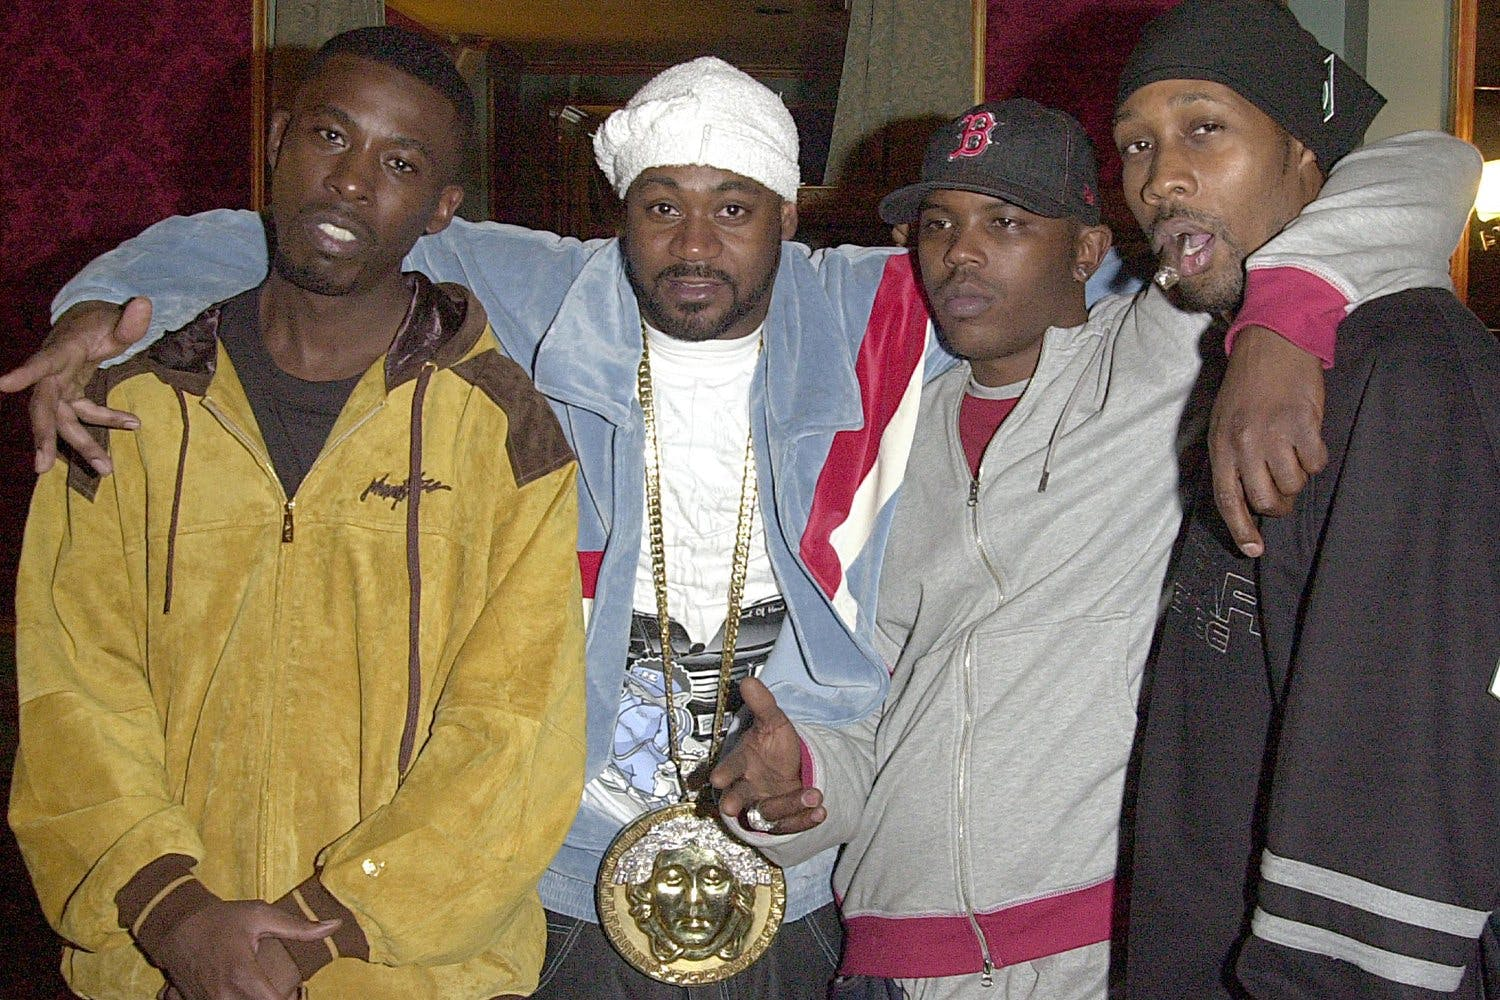 GZA, Ghostface Killah, Power and RZA during GZA and Wu-Tang Clan 2002 Video Shoot at Etoile in New York City, New York, United States. (Photo by Djamilla Rosa Cochran/WireImage)